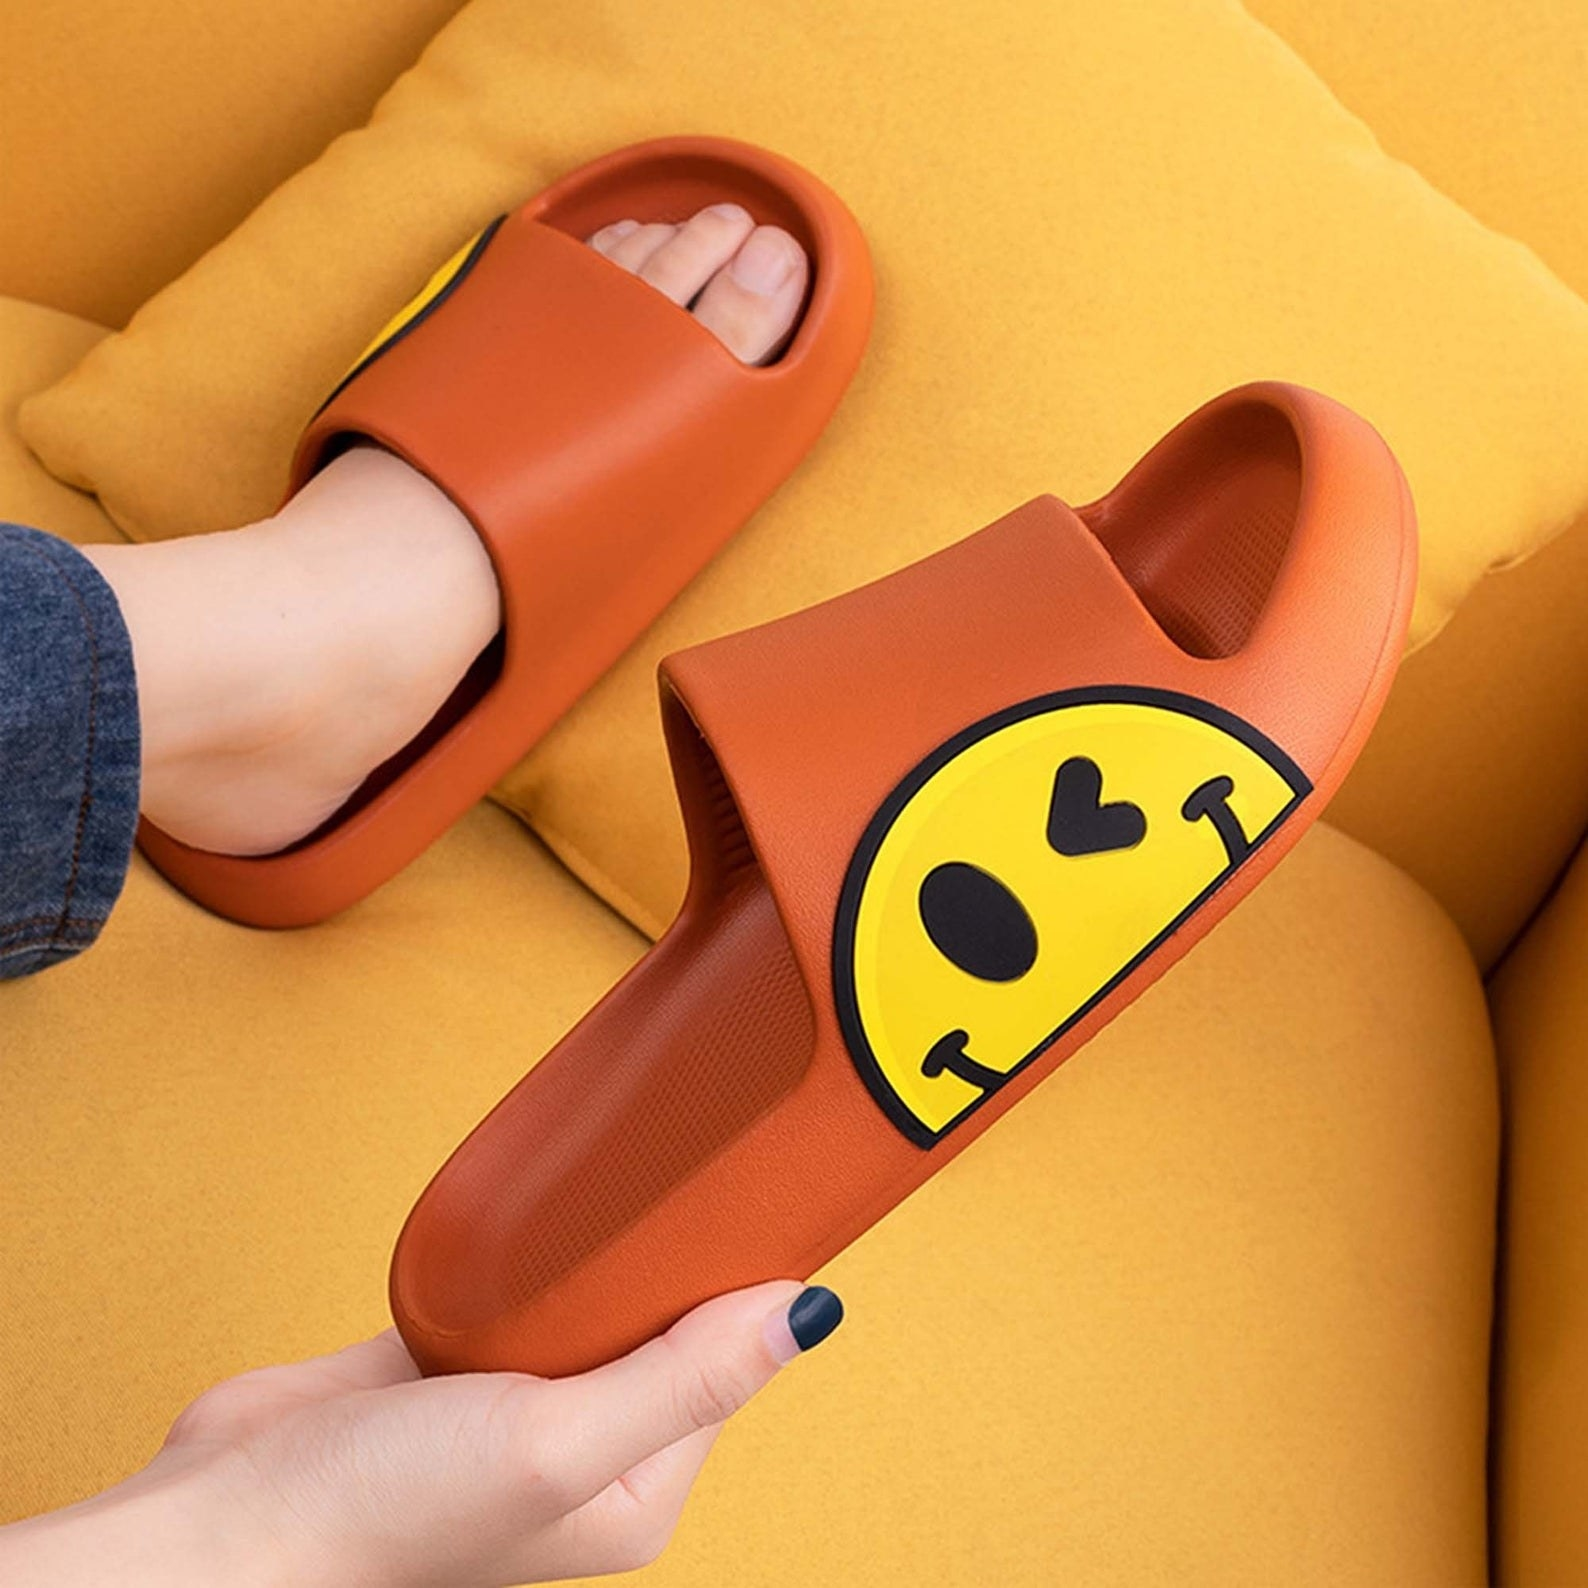 model holds pair of orange slides with graphic smiley face design on the side